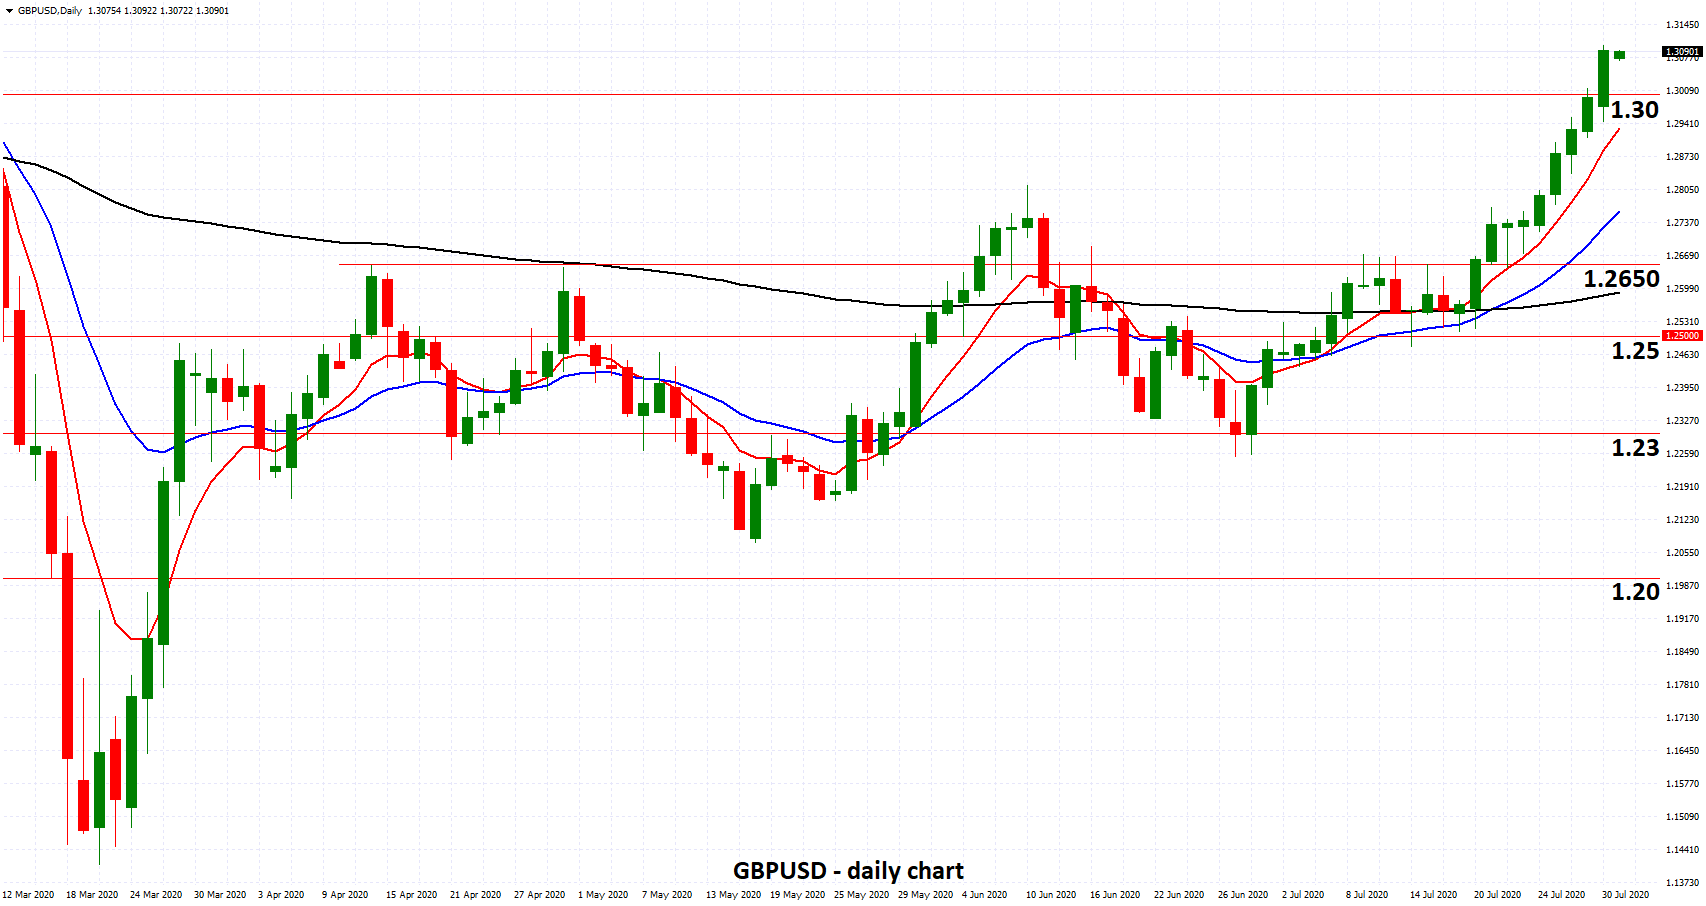 GBPUSD - Surges Through 1.30 as BOE Official Says UK in a V-shaped Recovery